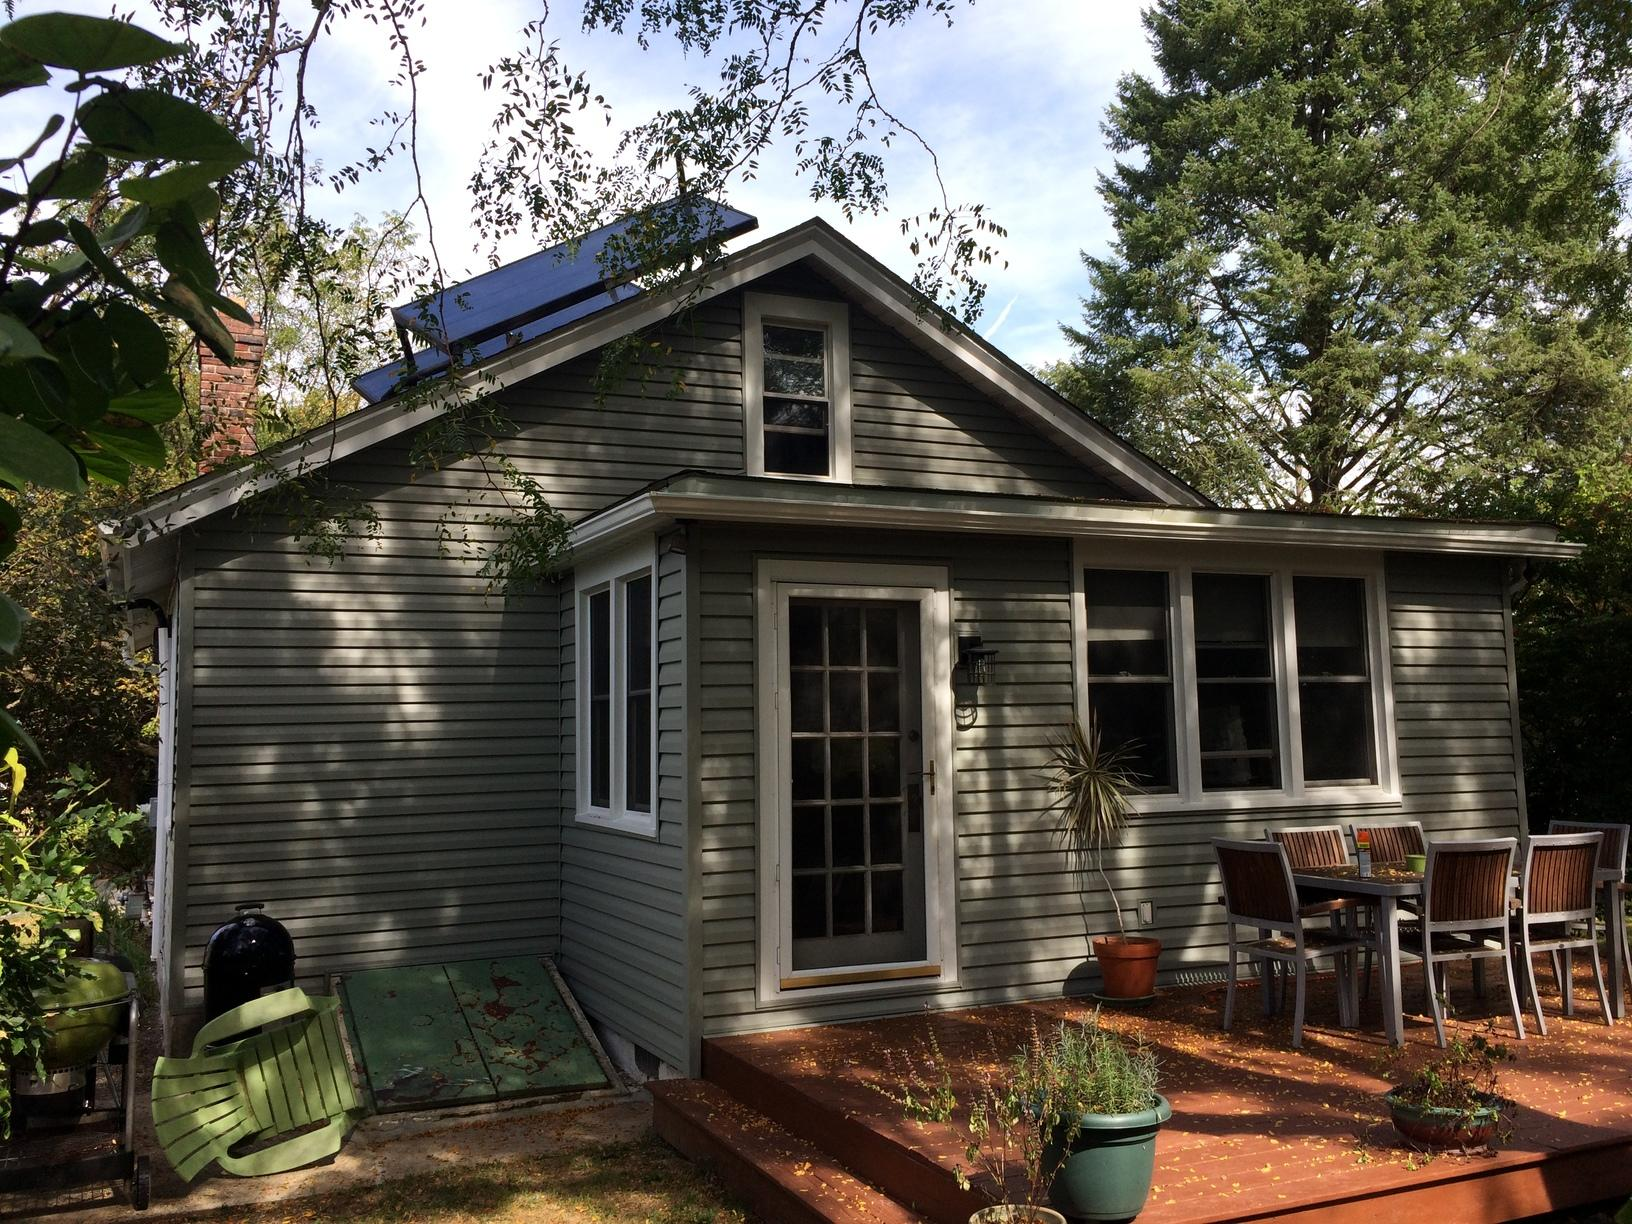 Replacing Failing Stucco with Insulated Vinyl Siding in PA